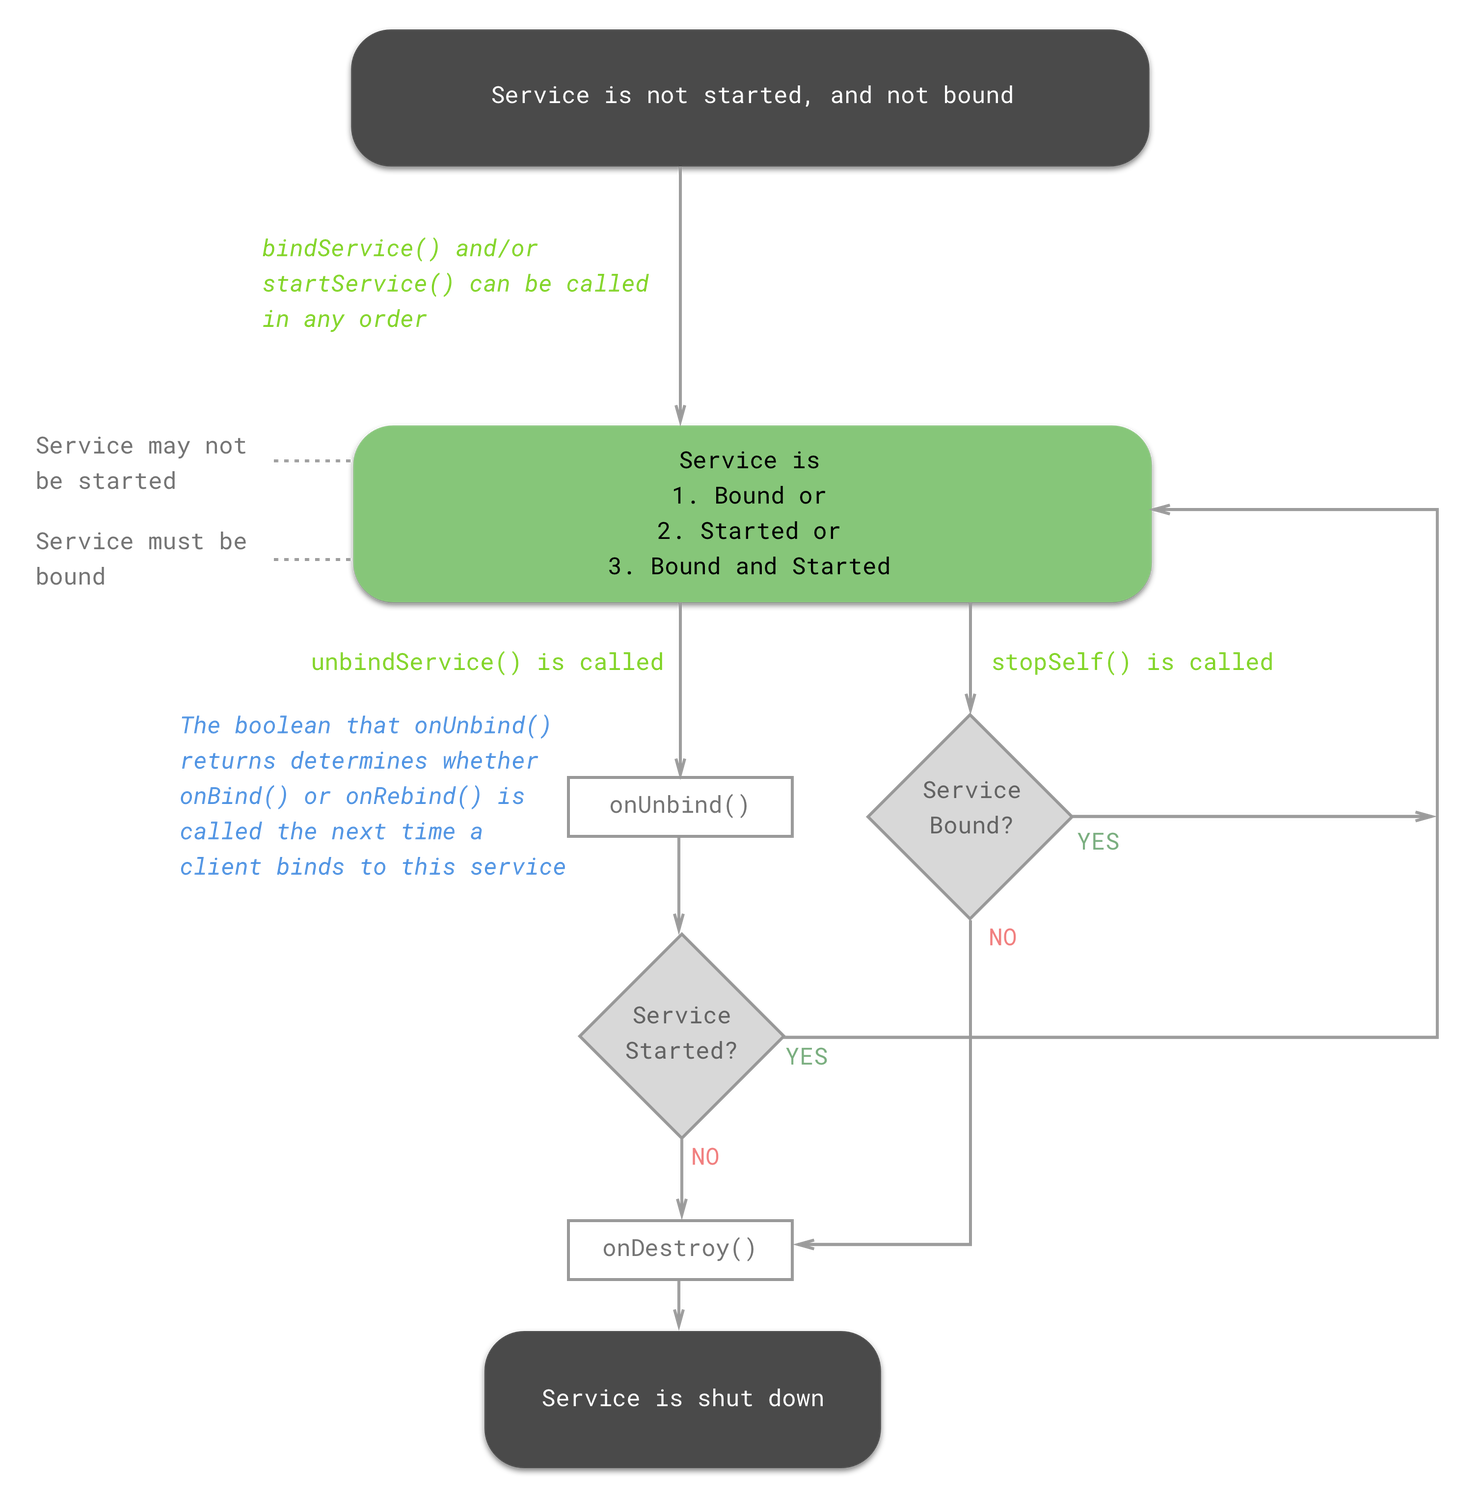 Deep Dive Into Android Services Proandroiddev After Several Hand Revisions I Ended Up With The Following Schematic Heres A Diagram That Summarizes These States And Transitions Between Them For Bound Started Service